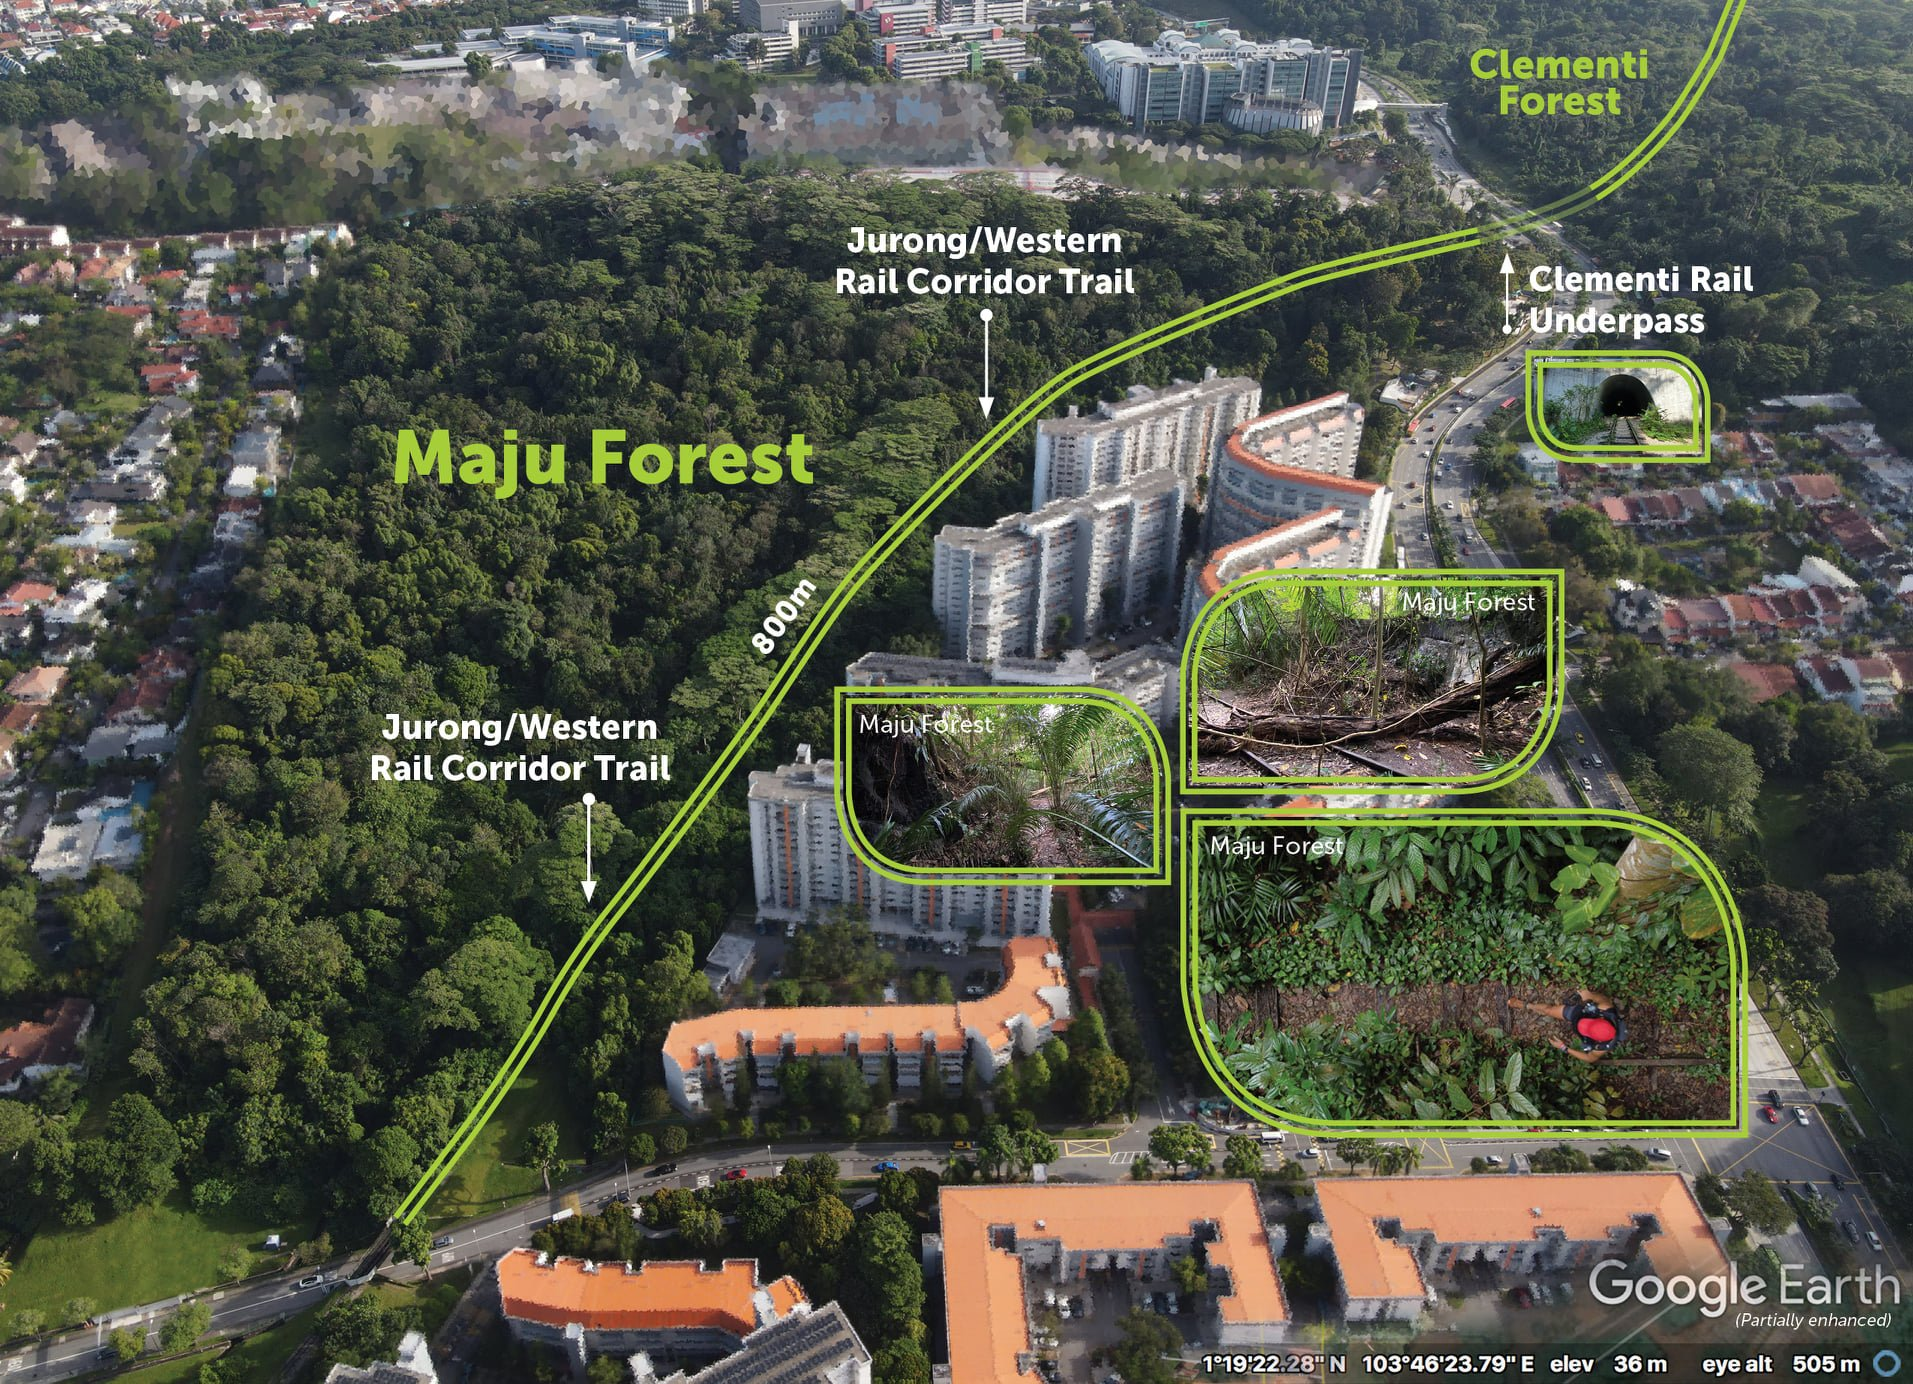 Clementi Forest proposal